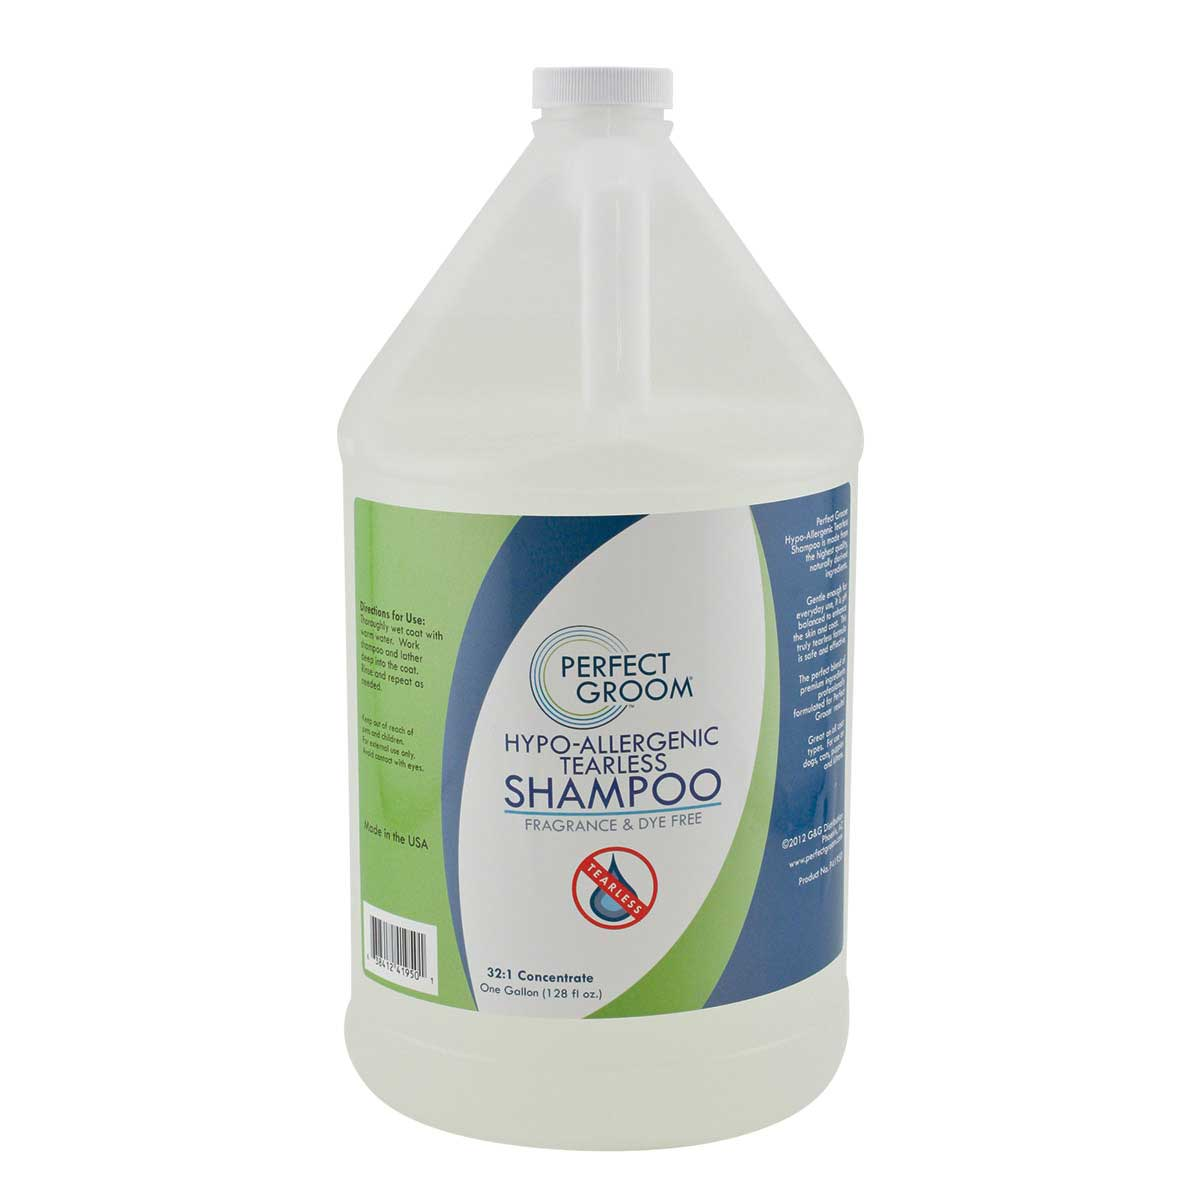 Perfect Groom Hypo-Allergenic Tearless Pet Shampoo Gallon for Professional Groomers